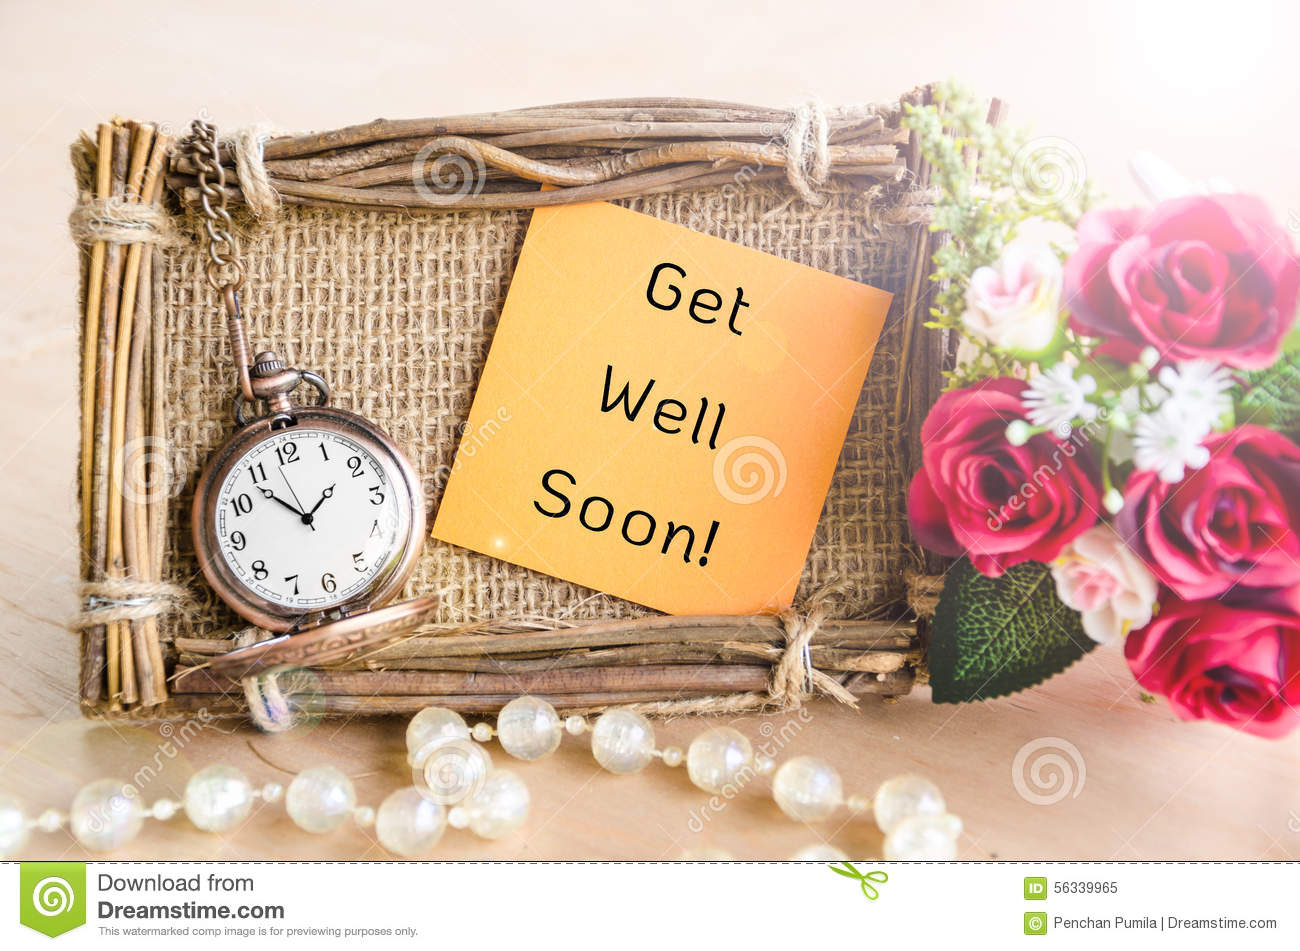 Get Well Soon Stock Illustration Illustration Of Illustration 6561821